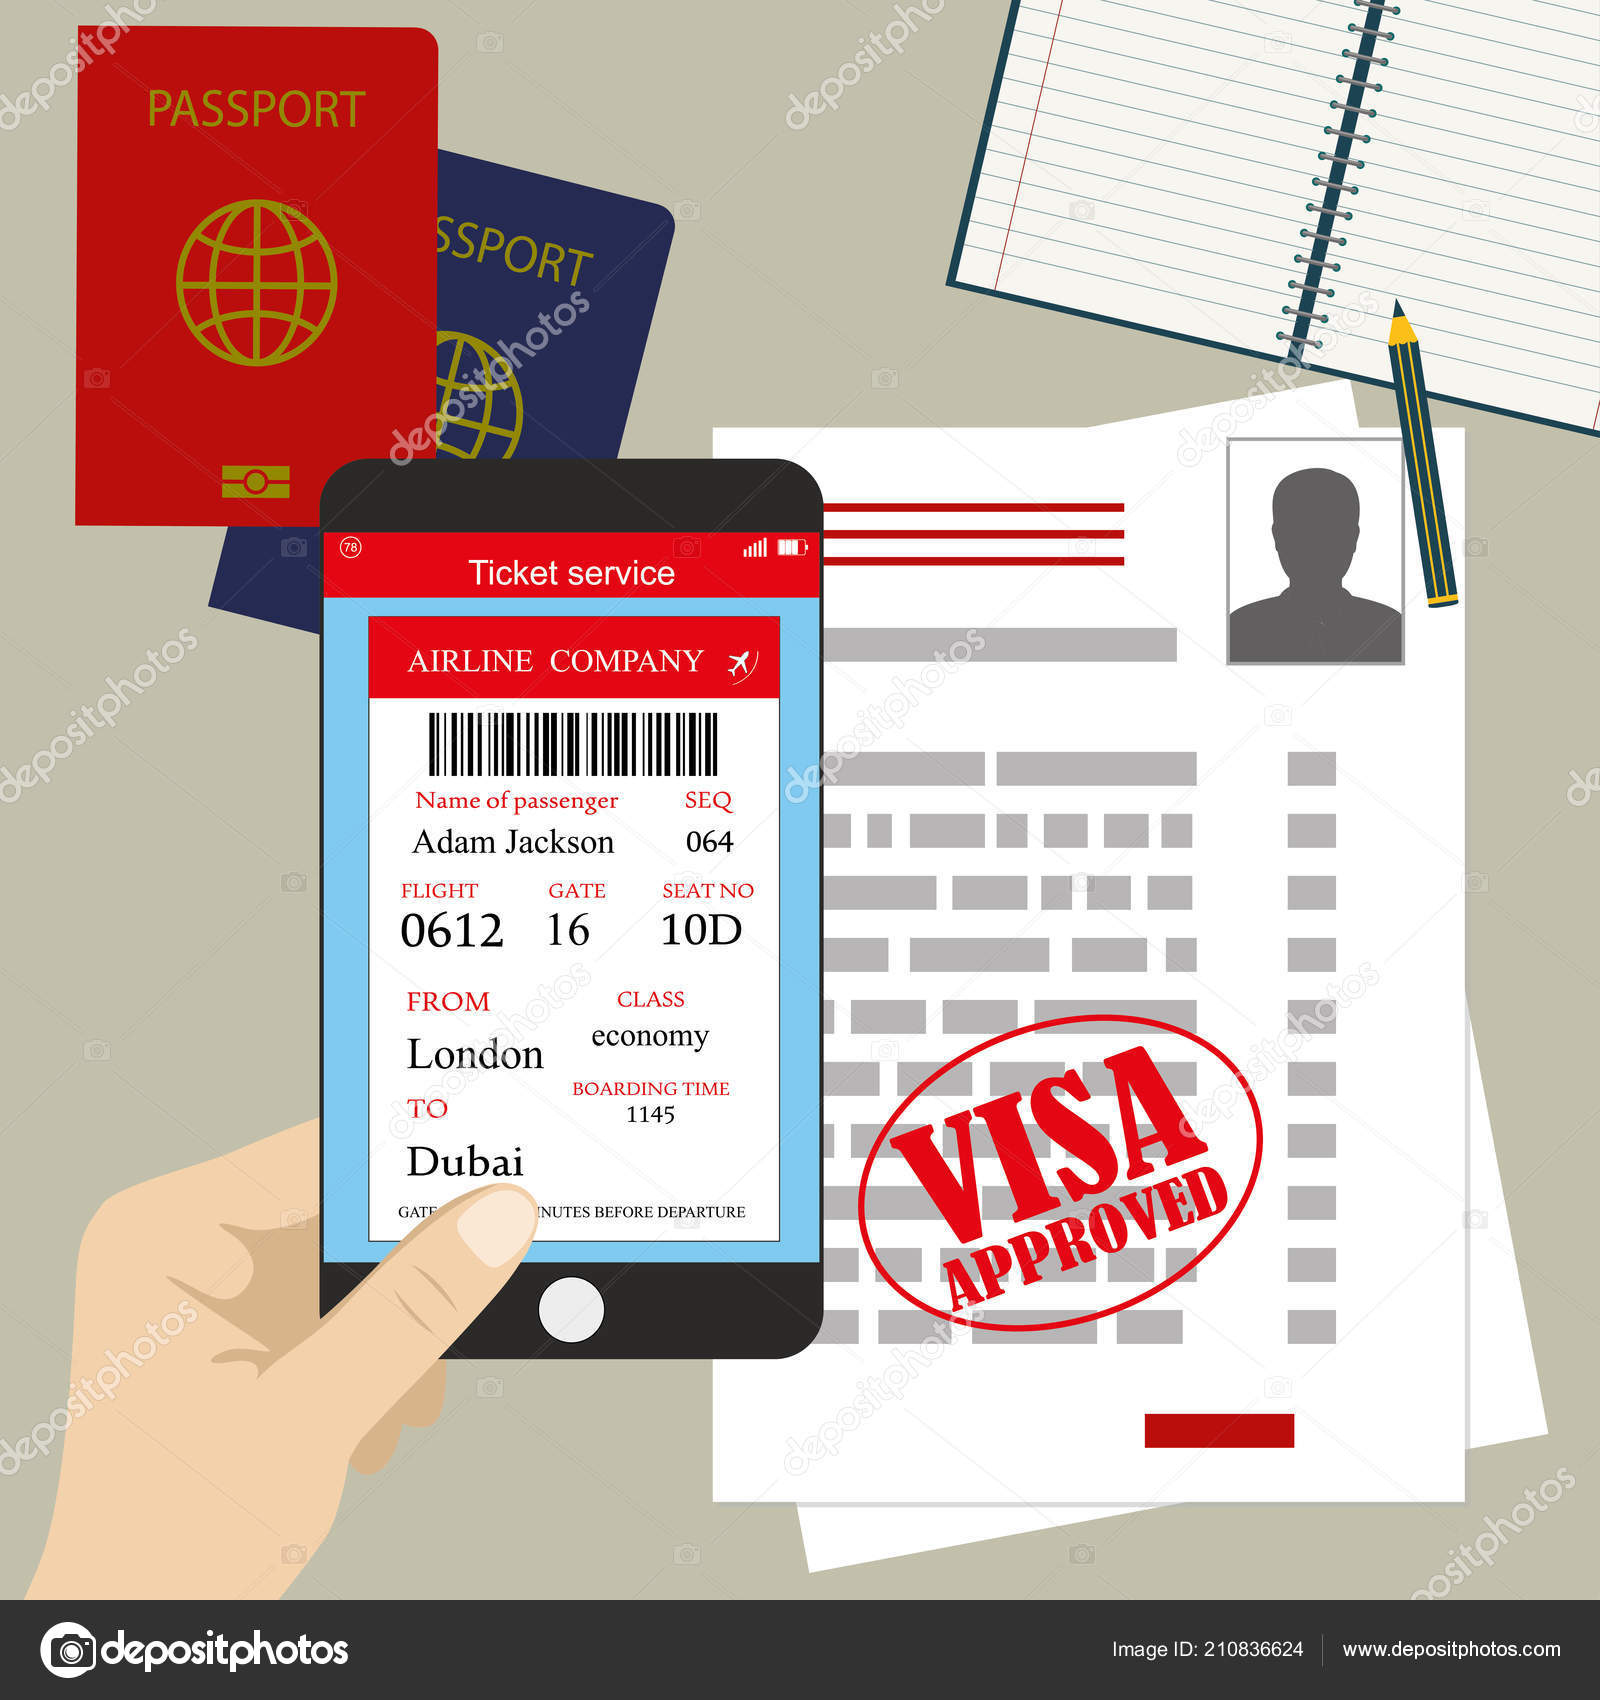 visa approved blank work permit passport smartphone boarding pass